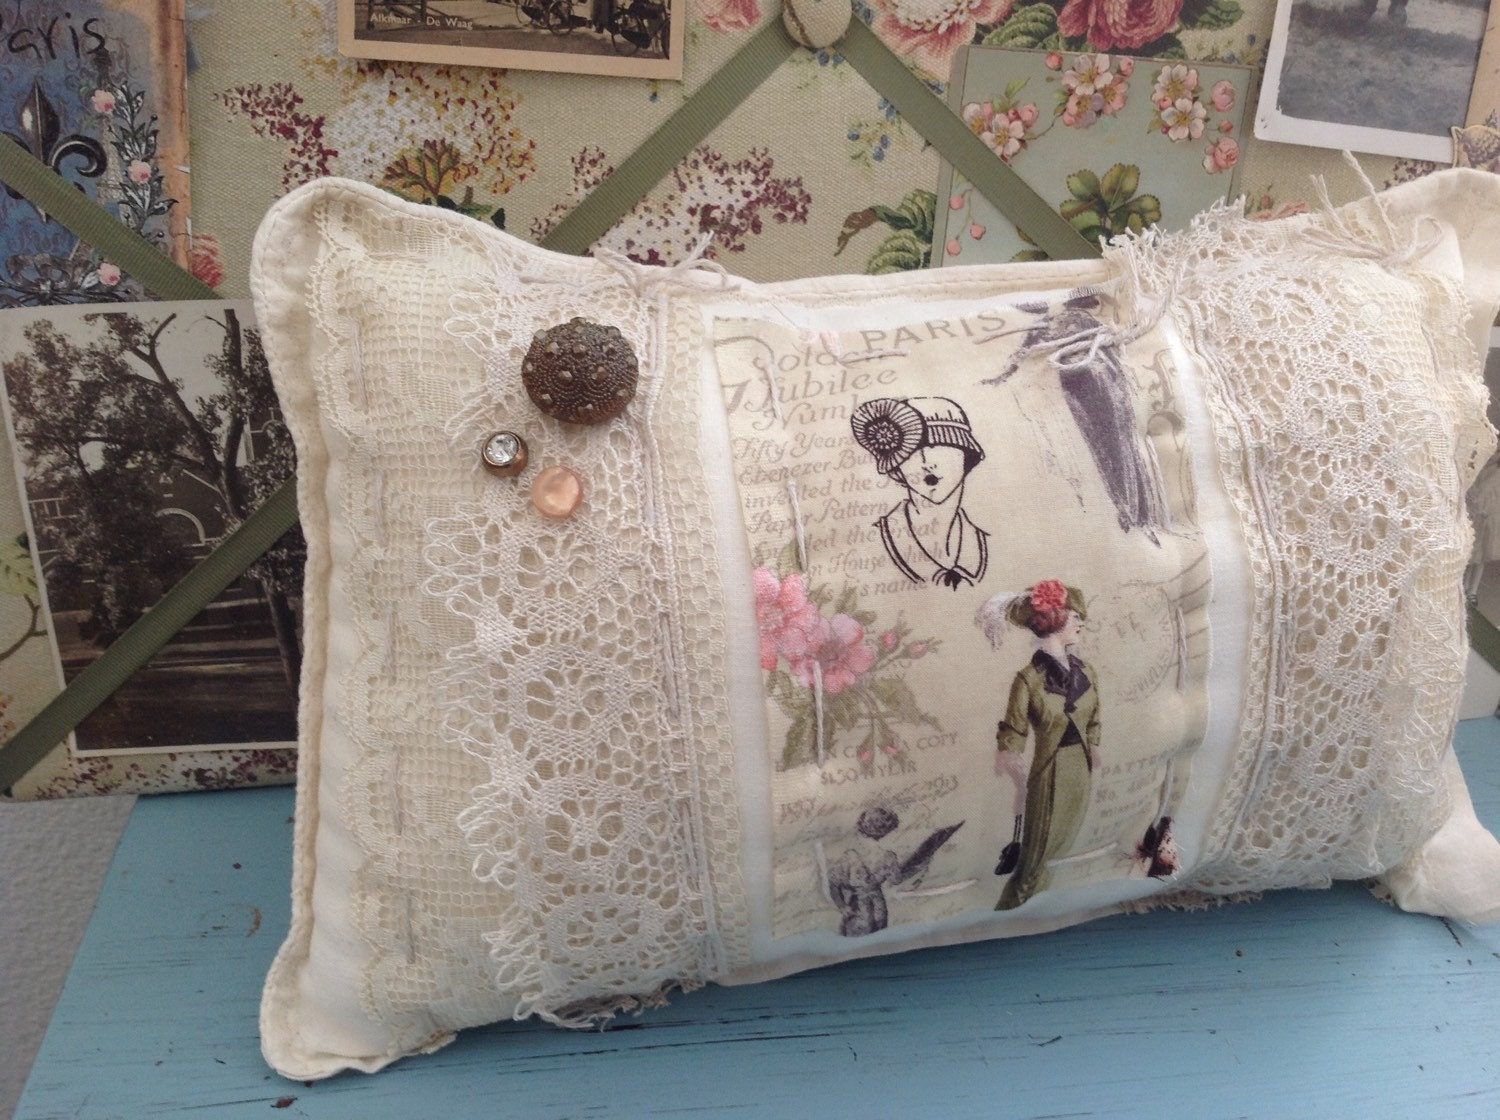 Shabby Chic Pillow Images : Shabby chic vintage sack paris pillow lace pillow shabby